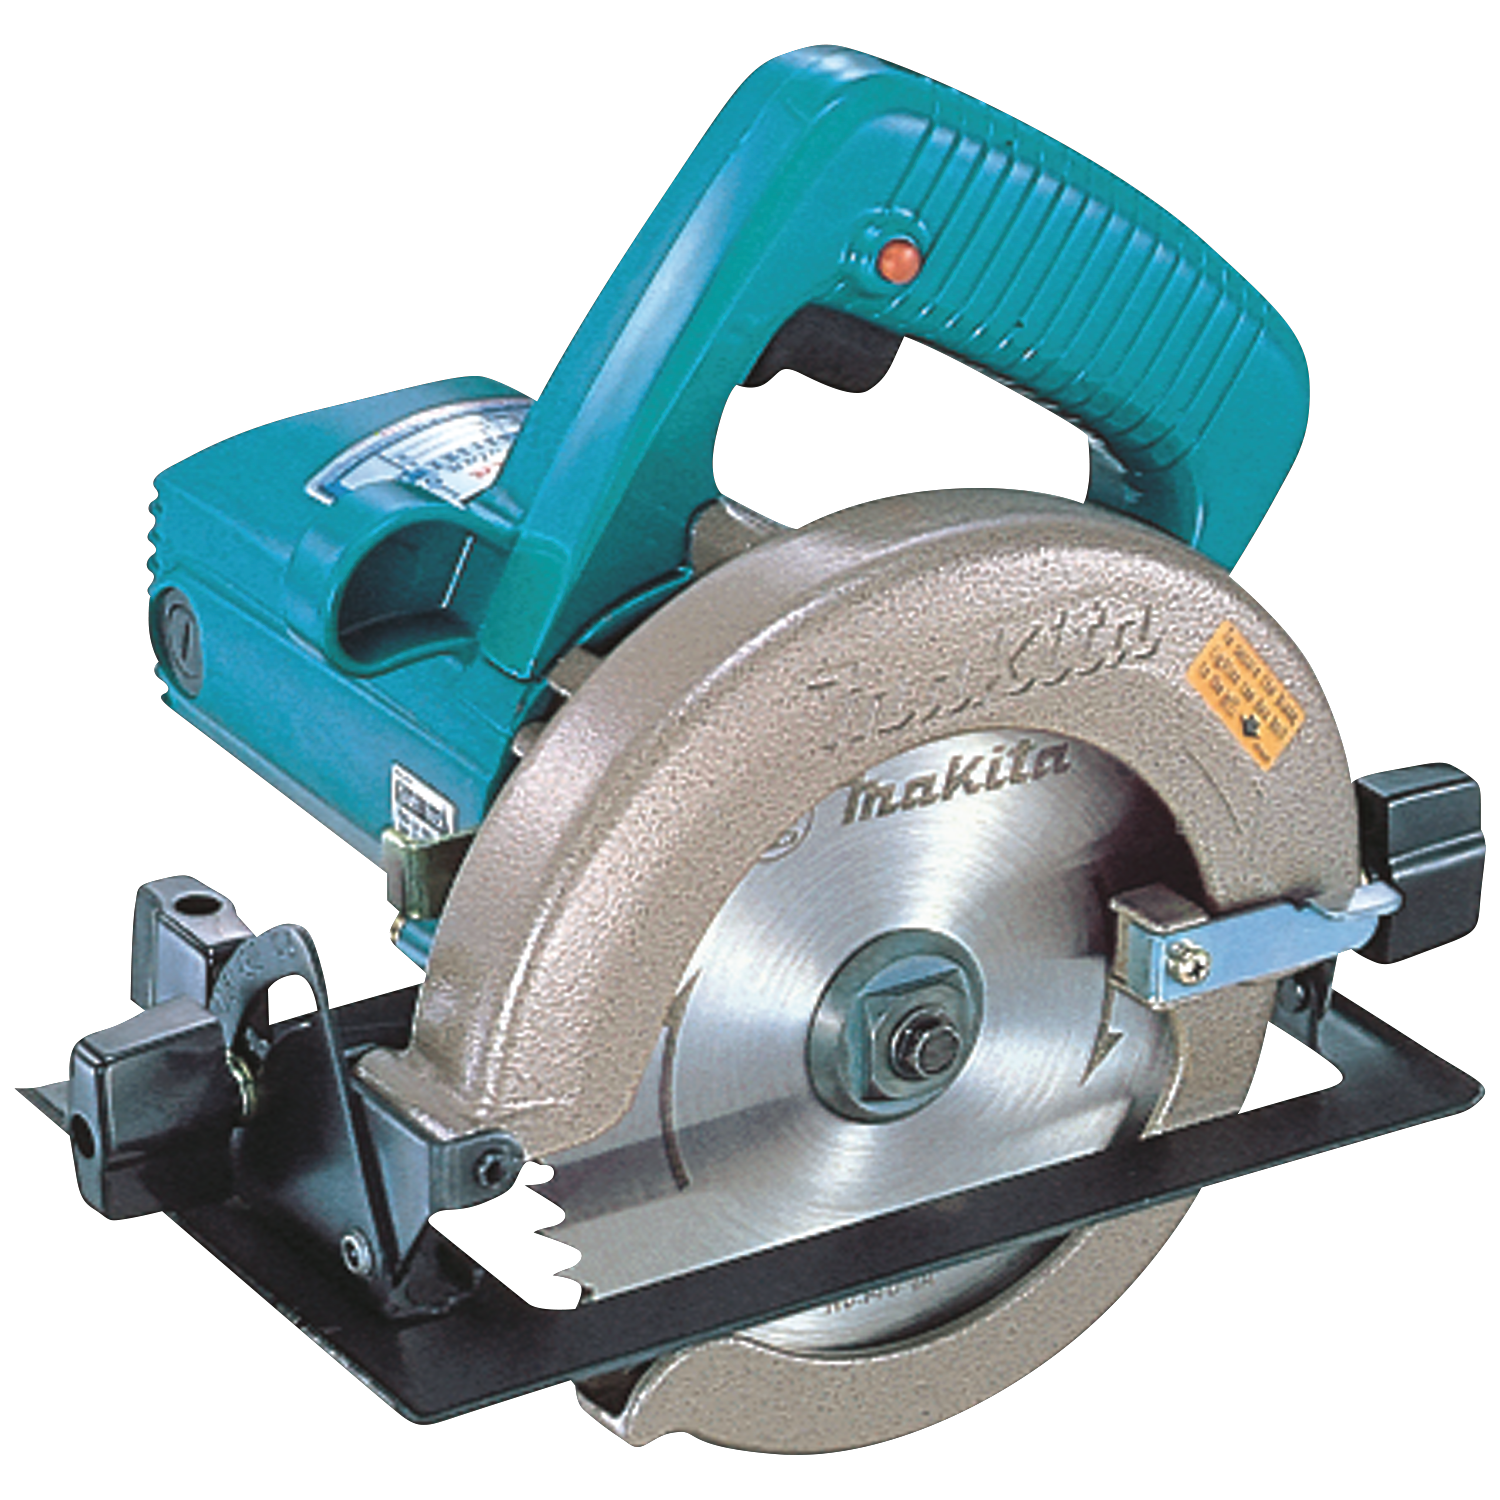 MAKITA 18V LXT Brushless Reciprocating Saw (Tool Only) | USA Tools ...